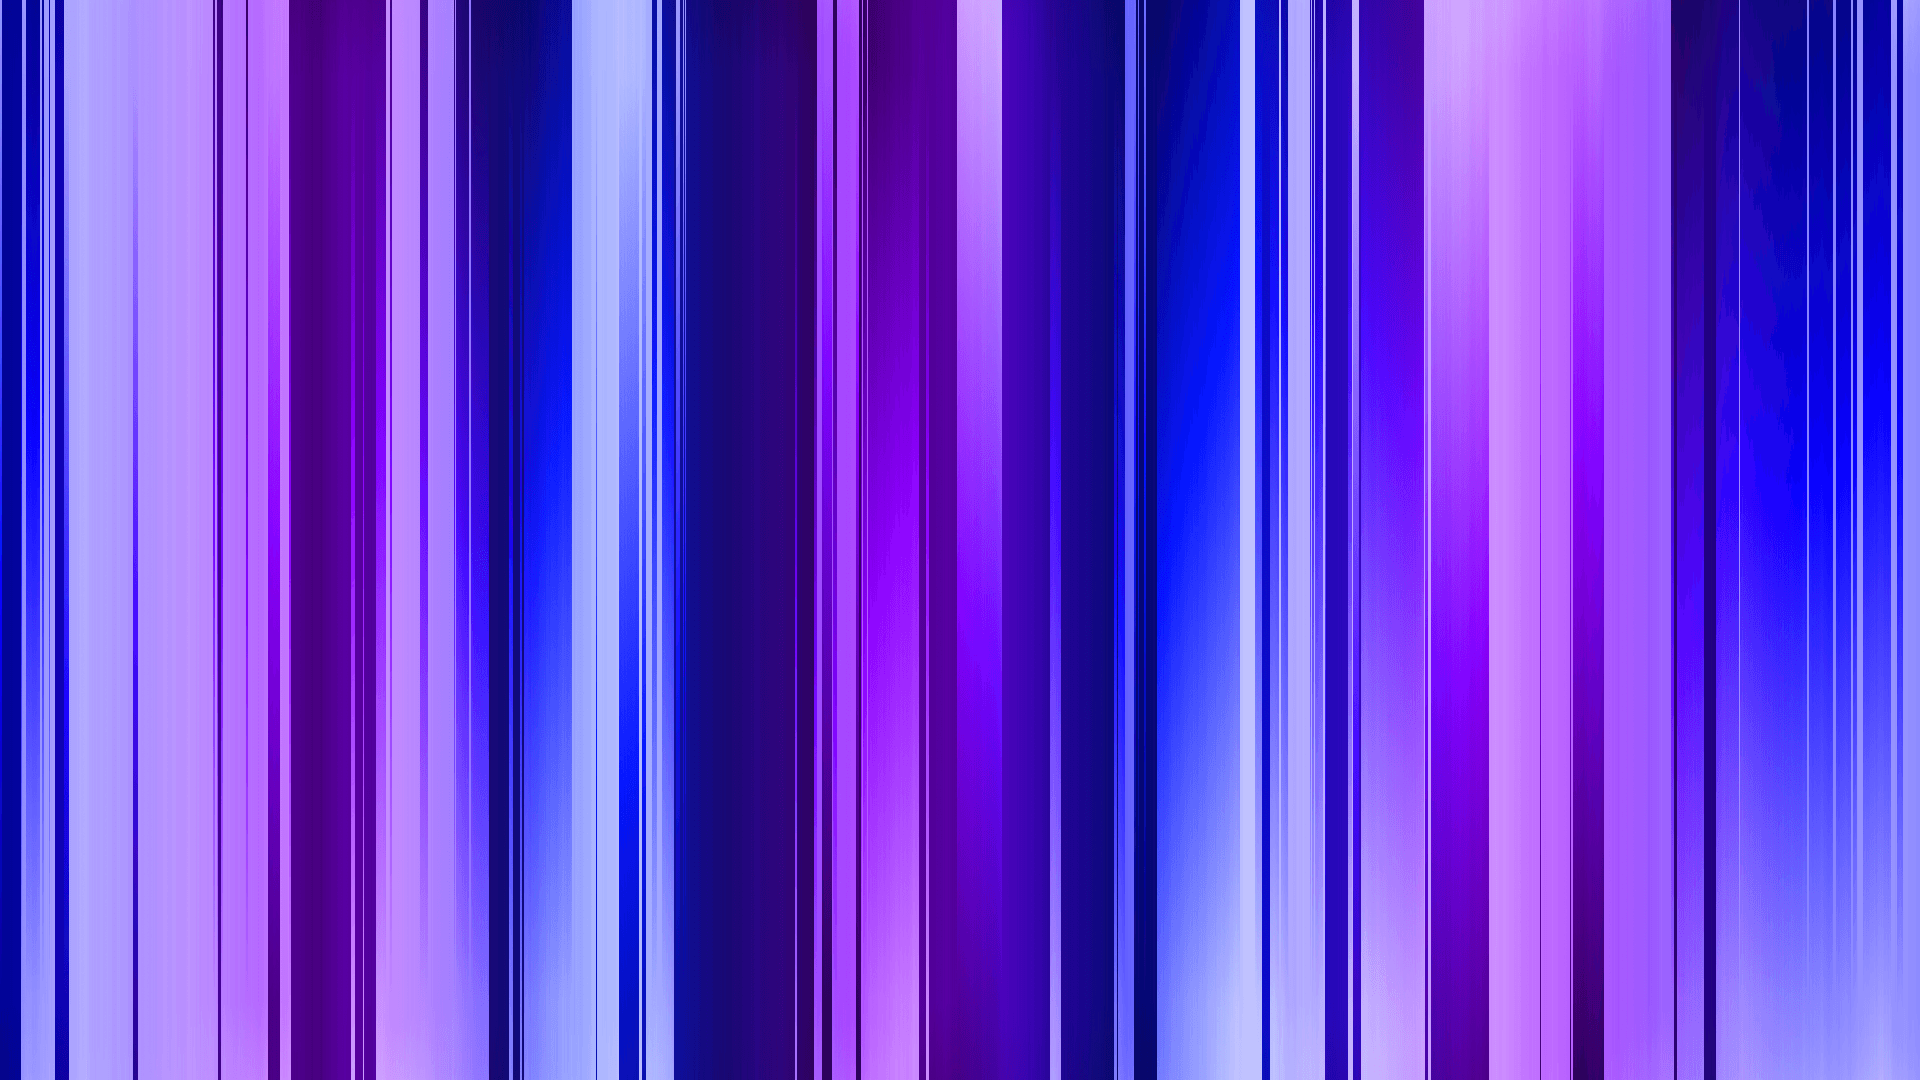 Wallpapers For   Blue And Purple Background Tumblr. Blue And Purple Backgrounds   Wallpaper Cave